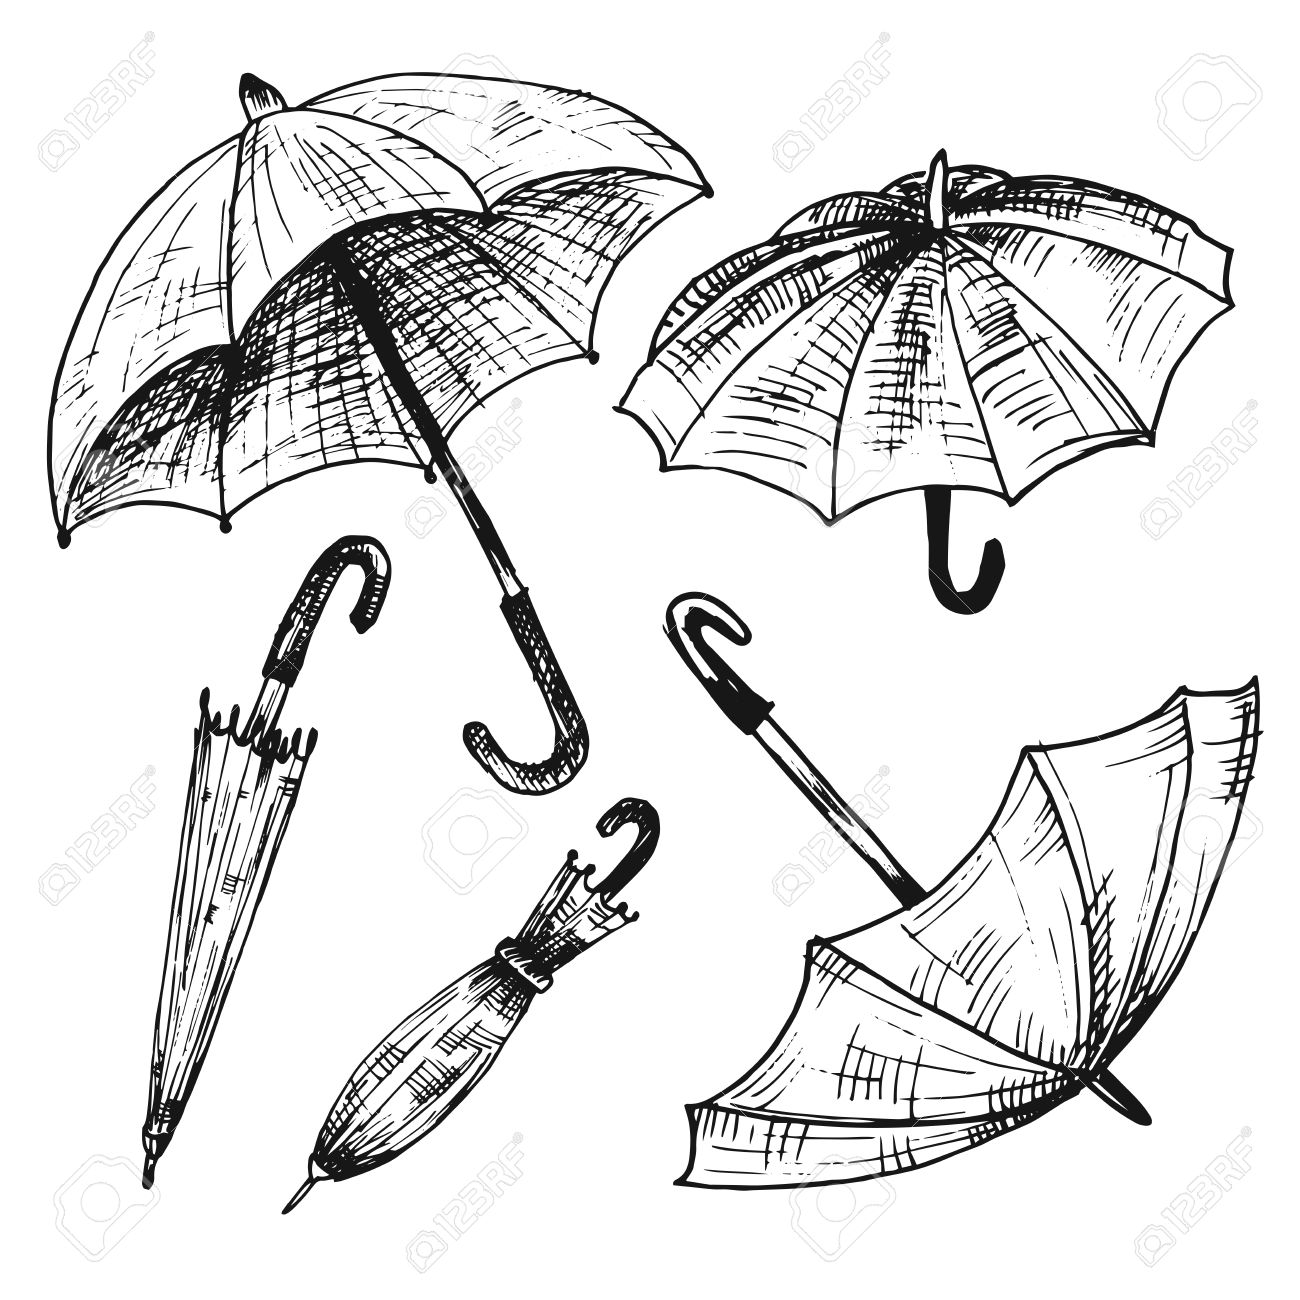 1300x1300 Drawing Set Of Umbrellas. Umbrellas From A Rain, Female Umbrellas